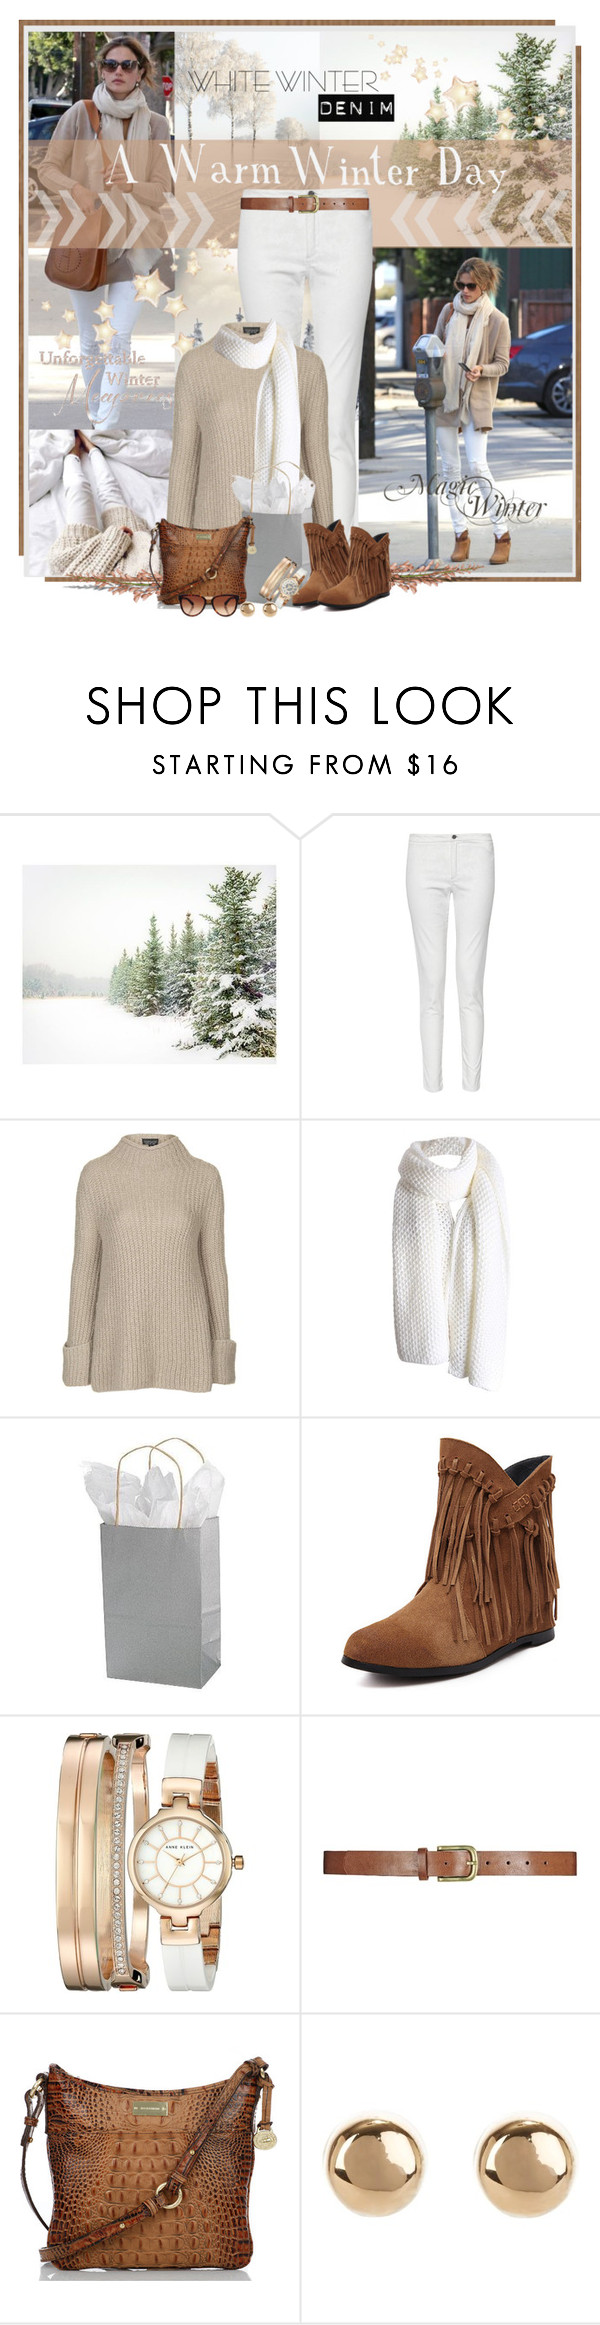 """""""A Warm Winter Day"""" by cathy1965 ❤ liked on Polyvore featuring Pottery Barn, French Connection, Topshop, Anne Klein, Brahmin, Jules Smith and Dolce&Gabbana"""